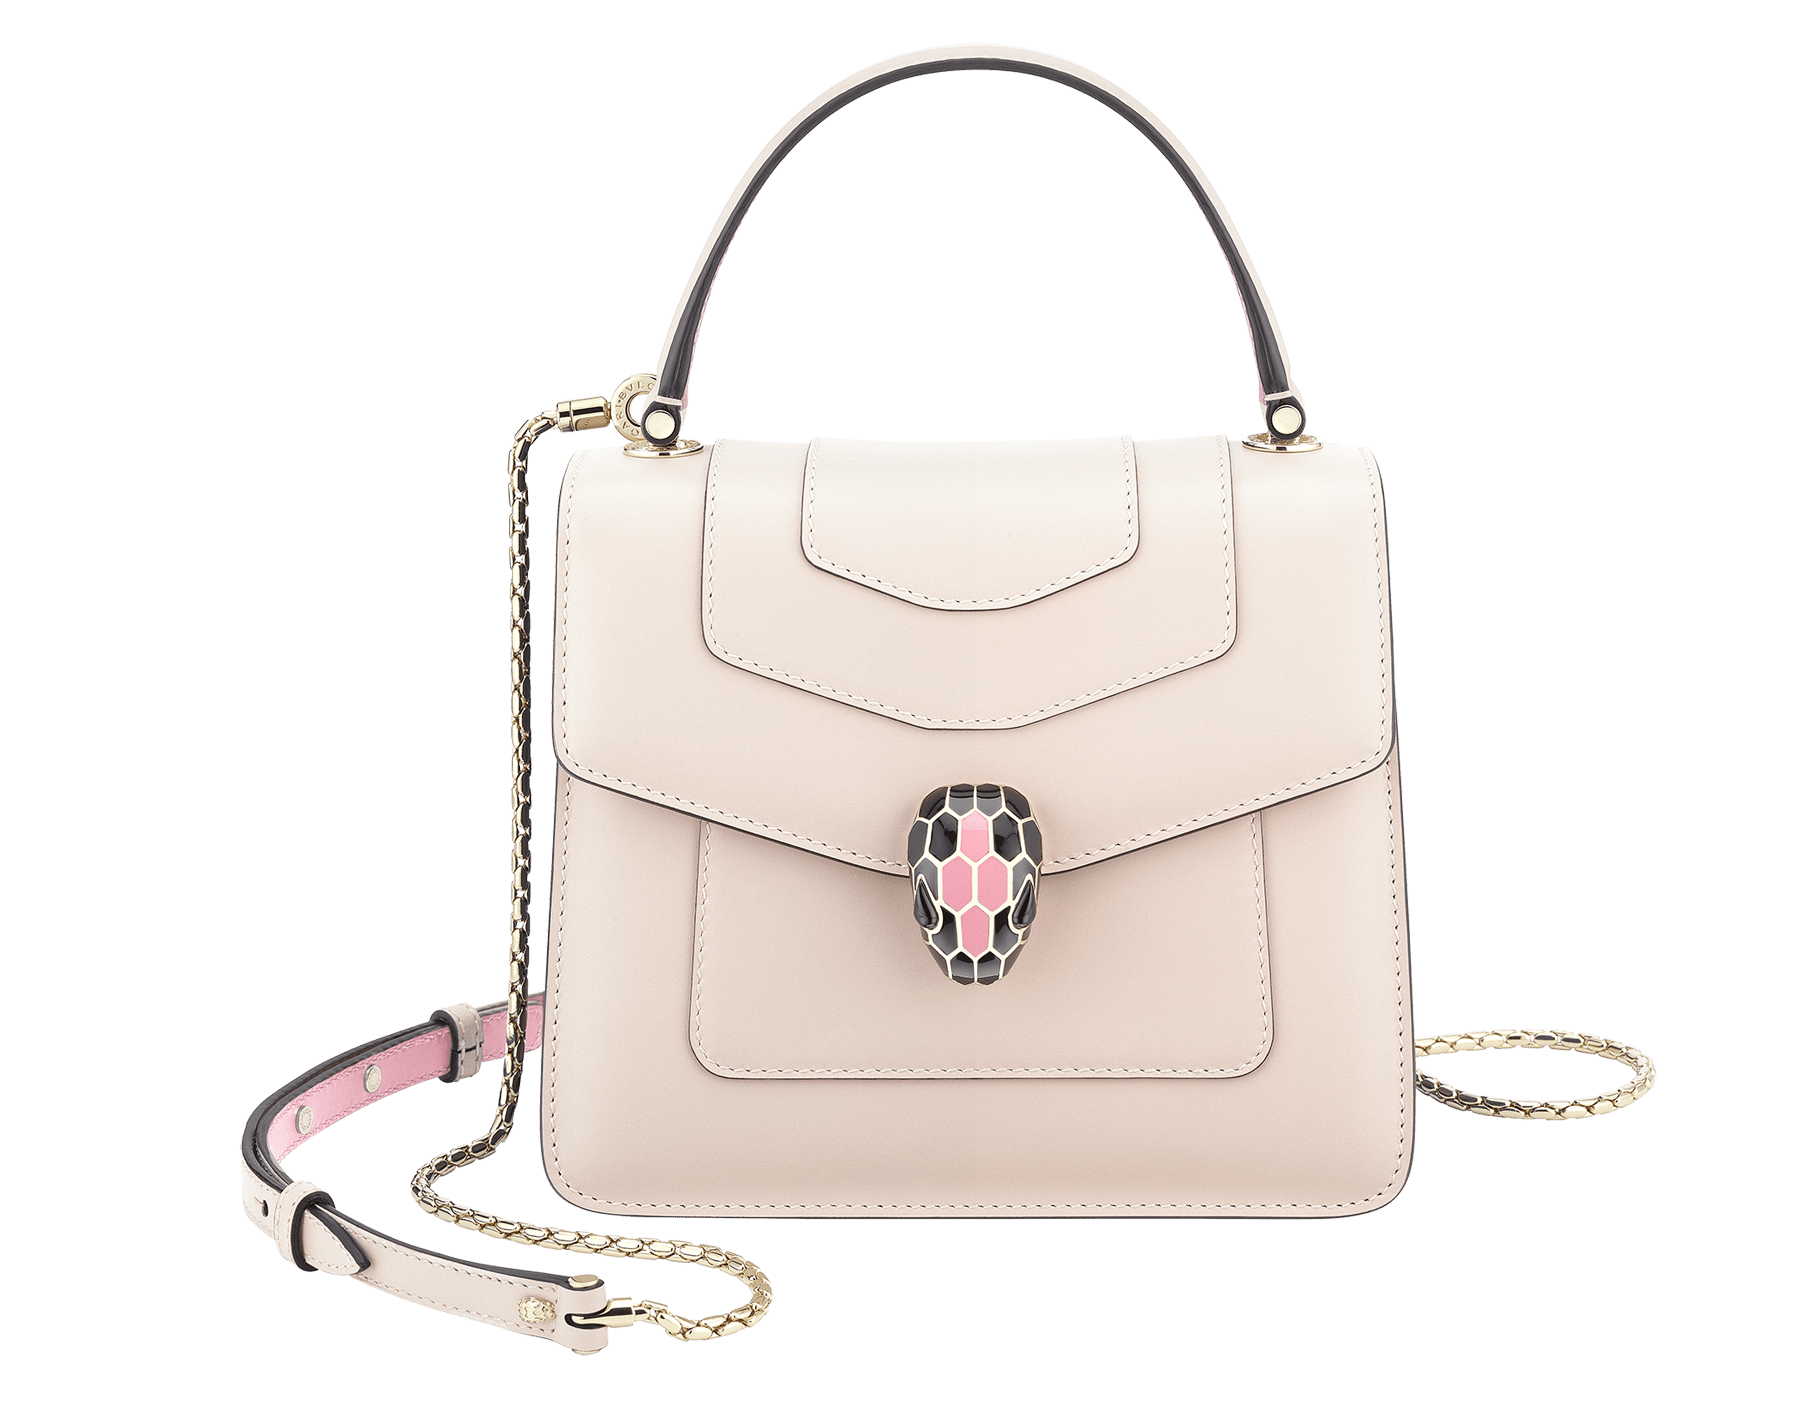 """Serpenti Forever"" crossbody bag with milky opal calf leather body and flamingo quartz calf leather sides. Iconic snakehead closure in light gold-plated brass enriched with milky opal and black enamel and black onyx eyes. 287978 image 1"